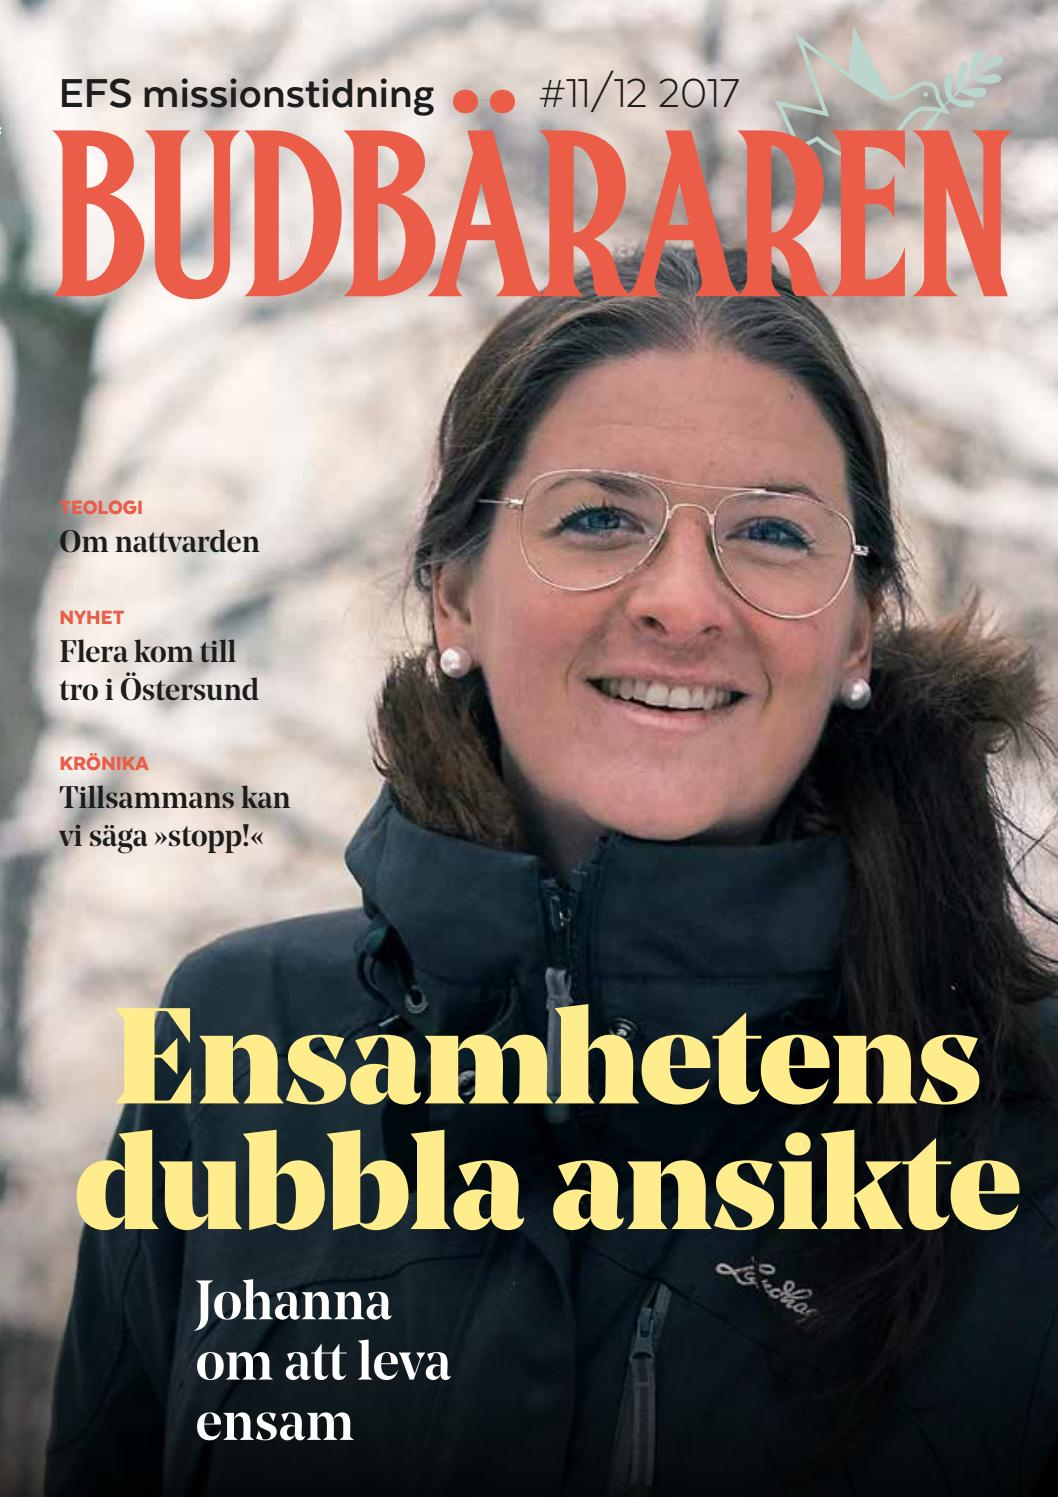 Budbäraren December 2017 by Budbäraren - issuu bcbfaef1bca4d